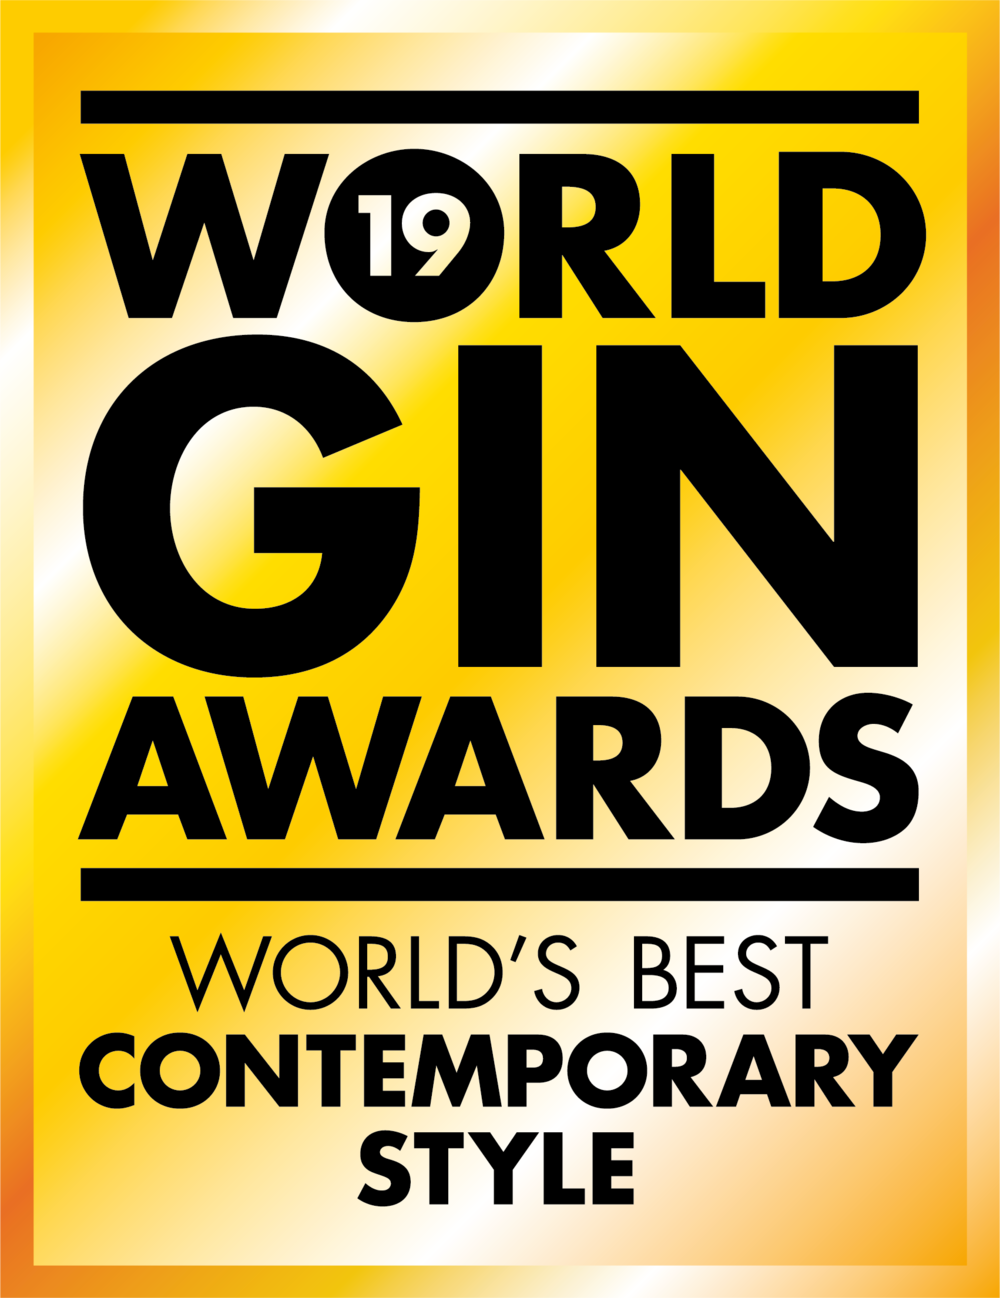 WORLD'S BEST CONTEMPORARY STYLE - World Gin Awards, 2019